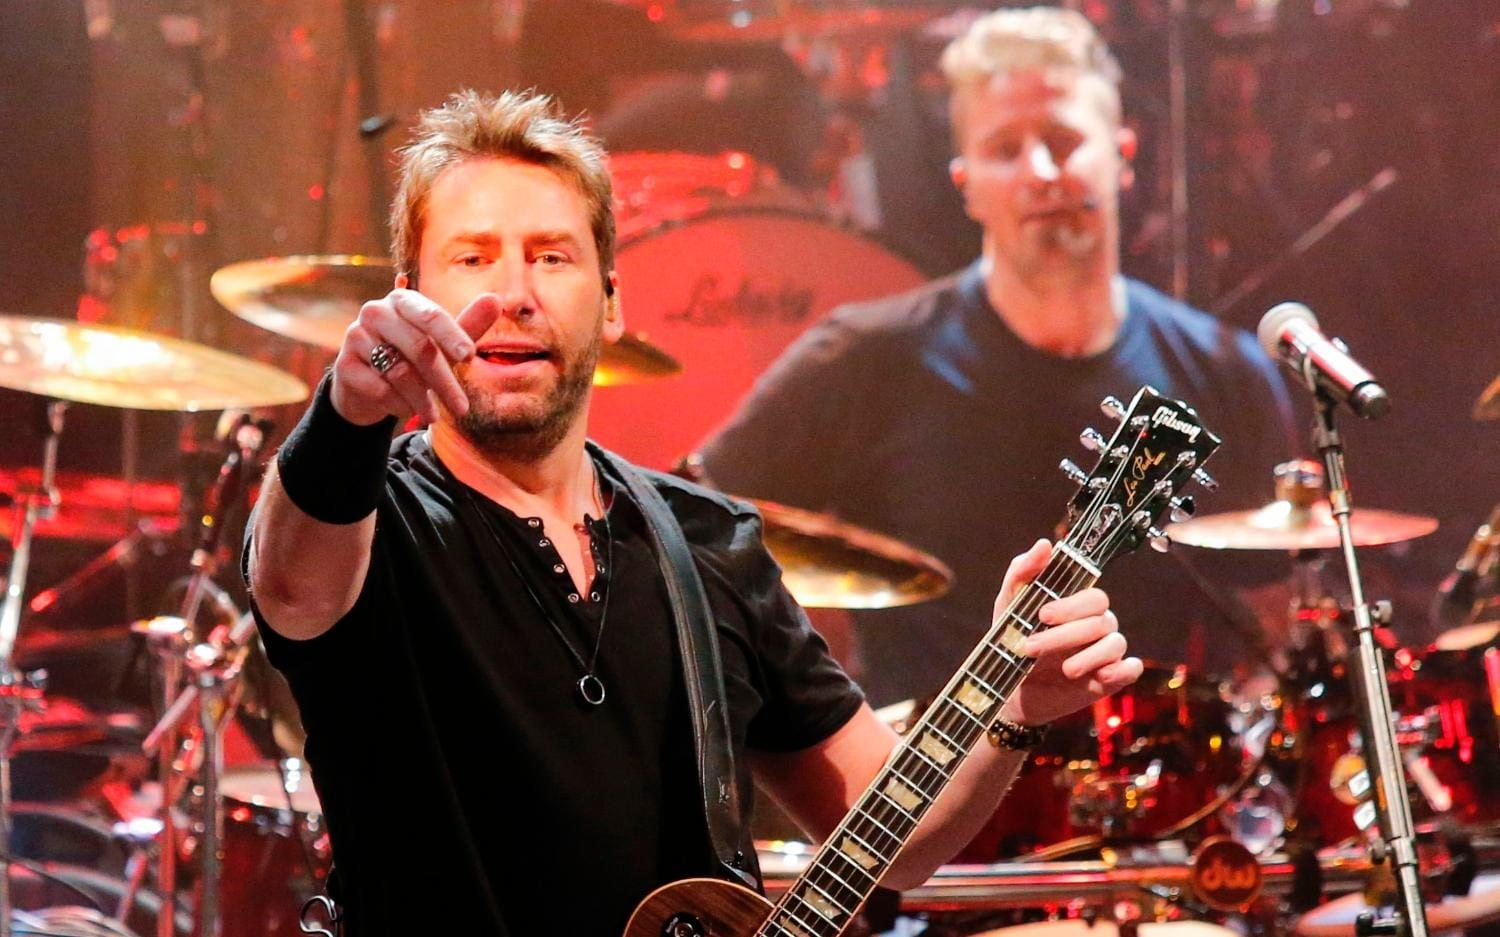 Bad Modern Rock Bands The Nickelback Phenomenon Explaining The World S Most Hated